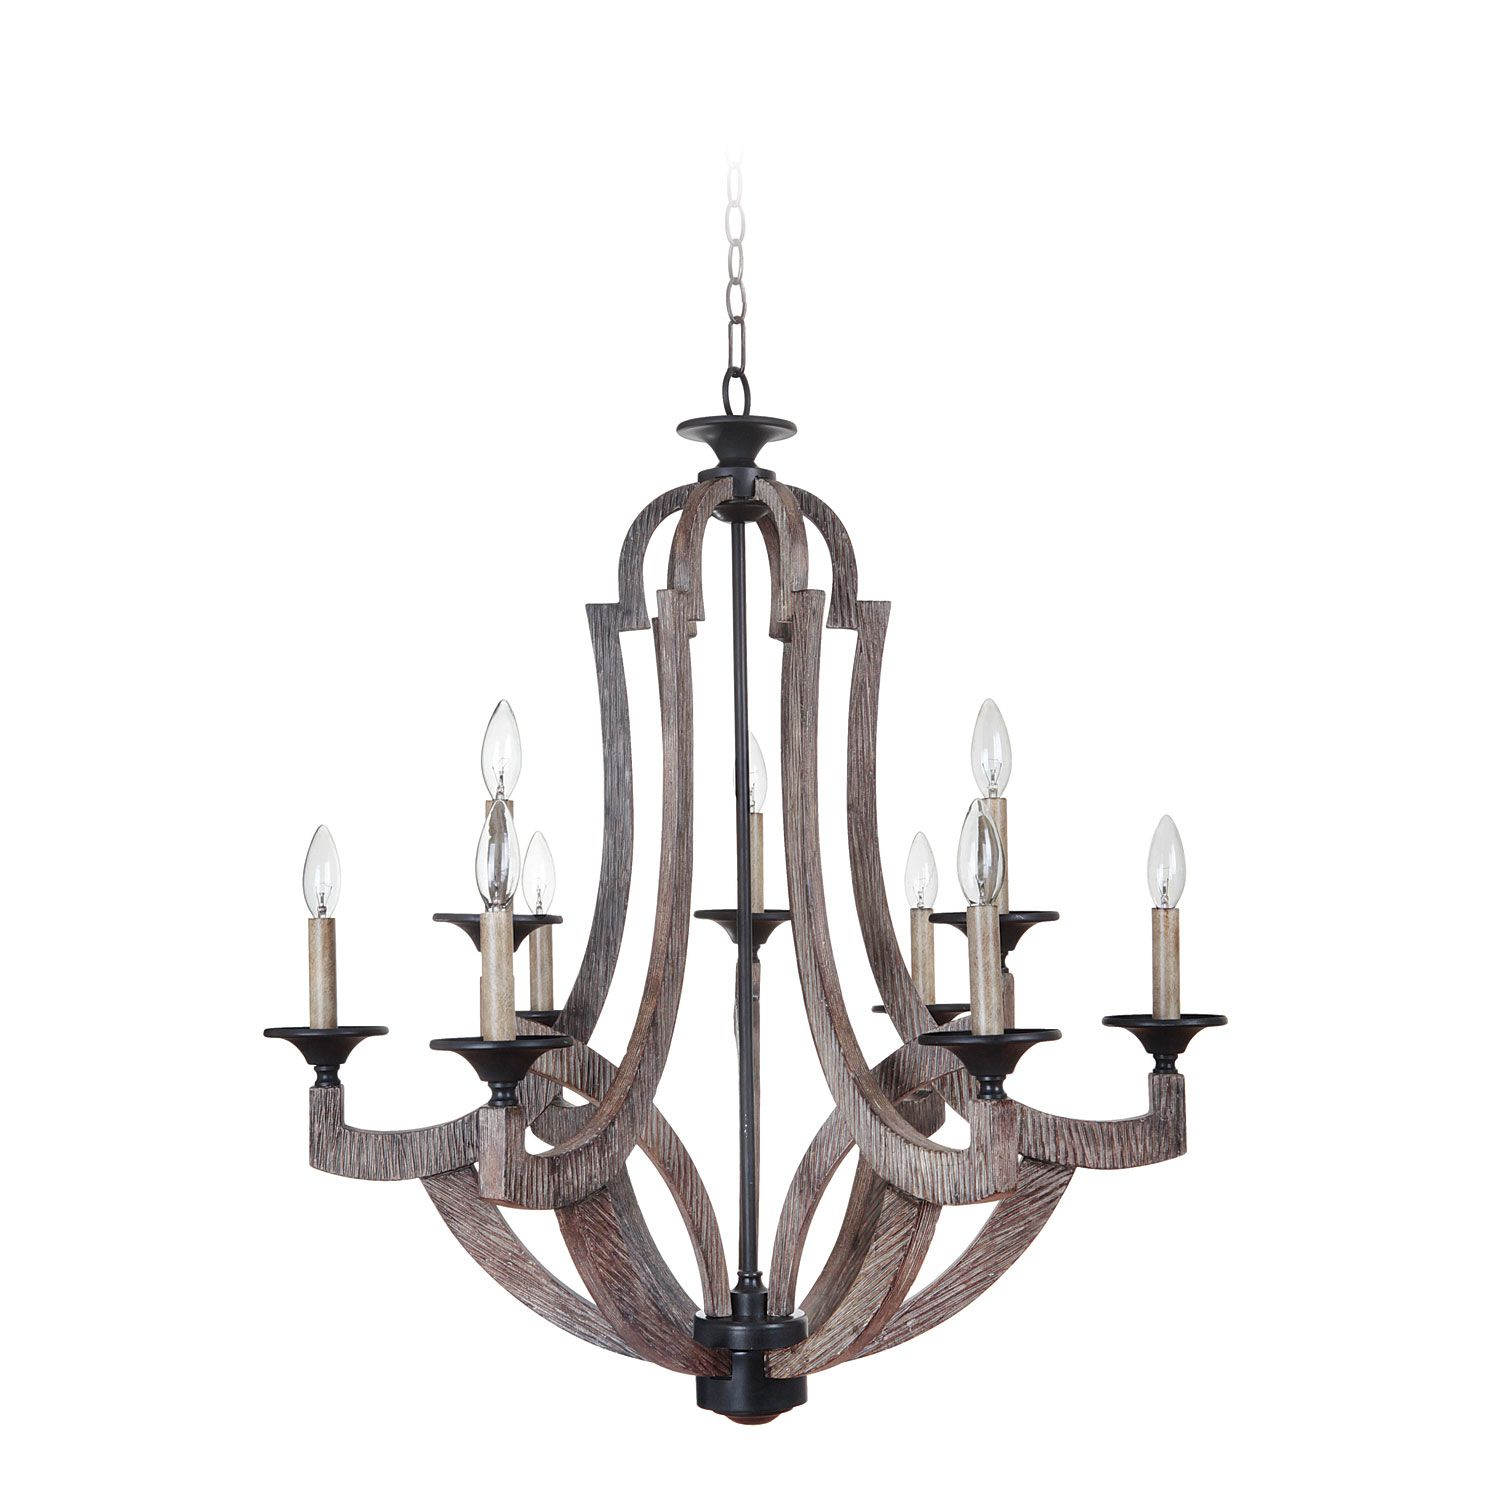 Craftmade winton weathered pine and bronze nine light 30 inch craftmade winton weathered pine and bronze nine light 30 inch chandelier on sale arubaitofo Gallery